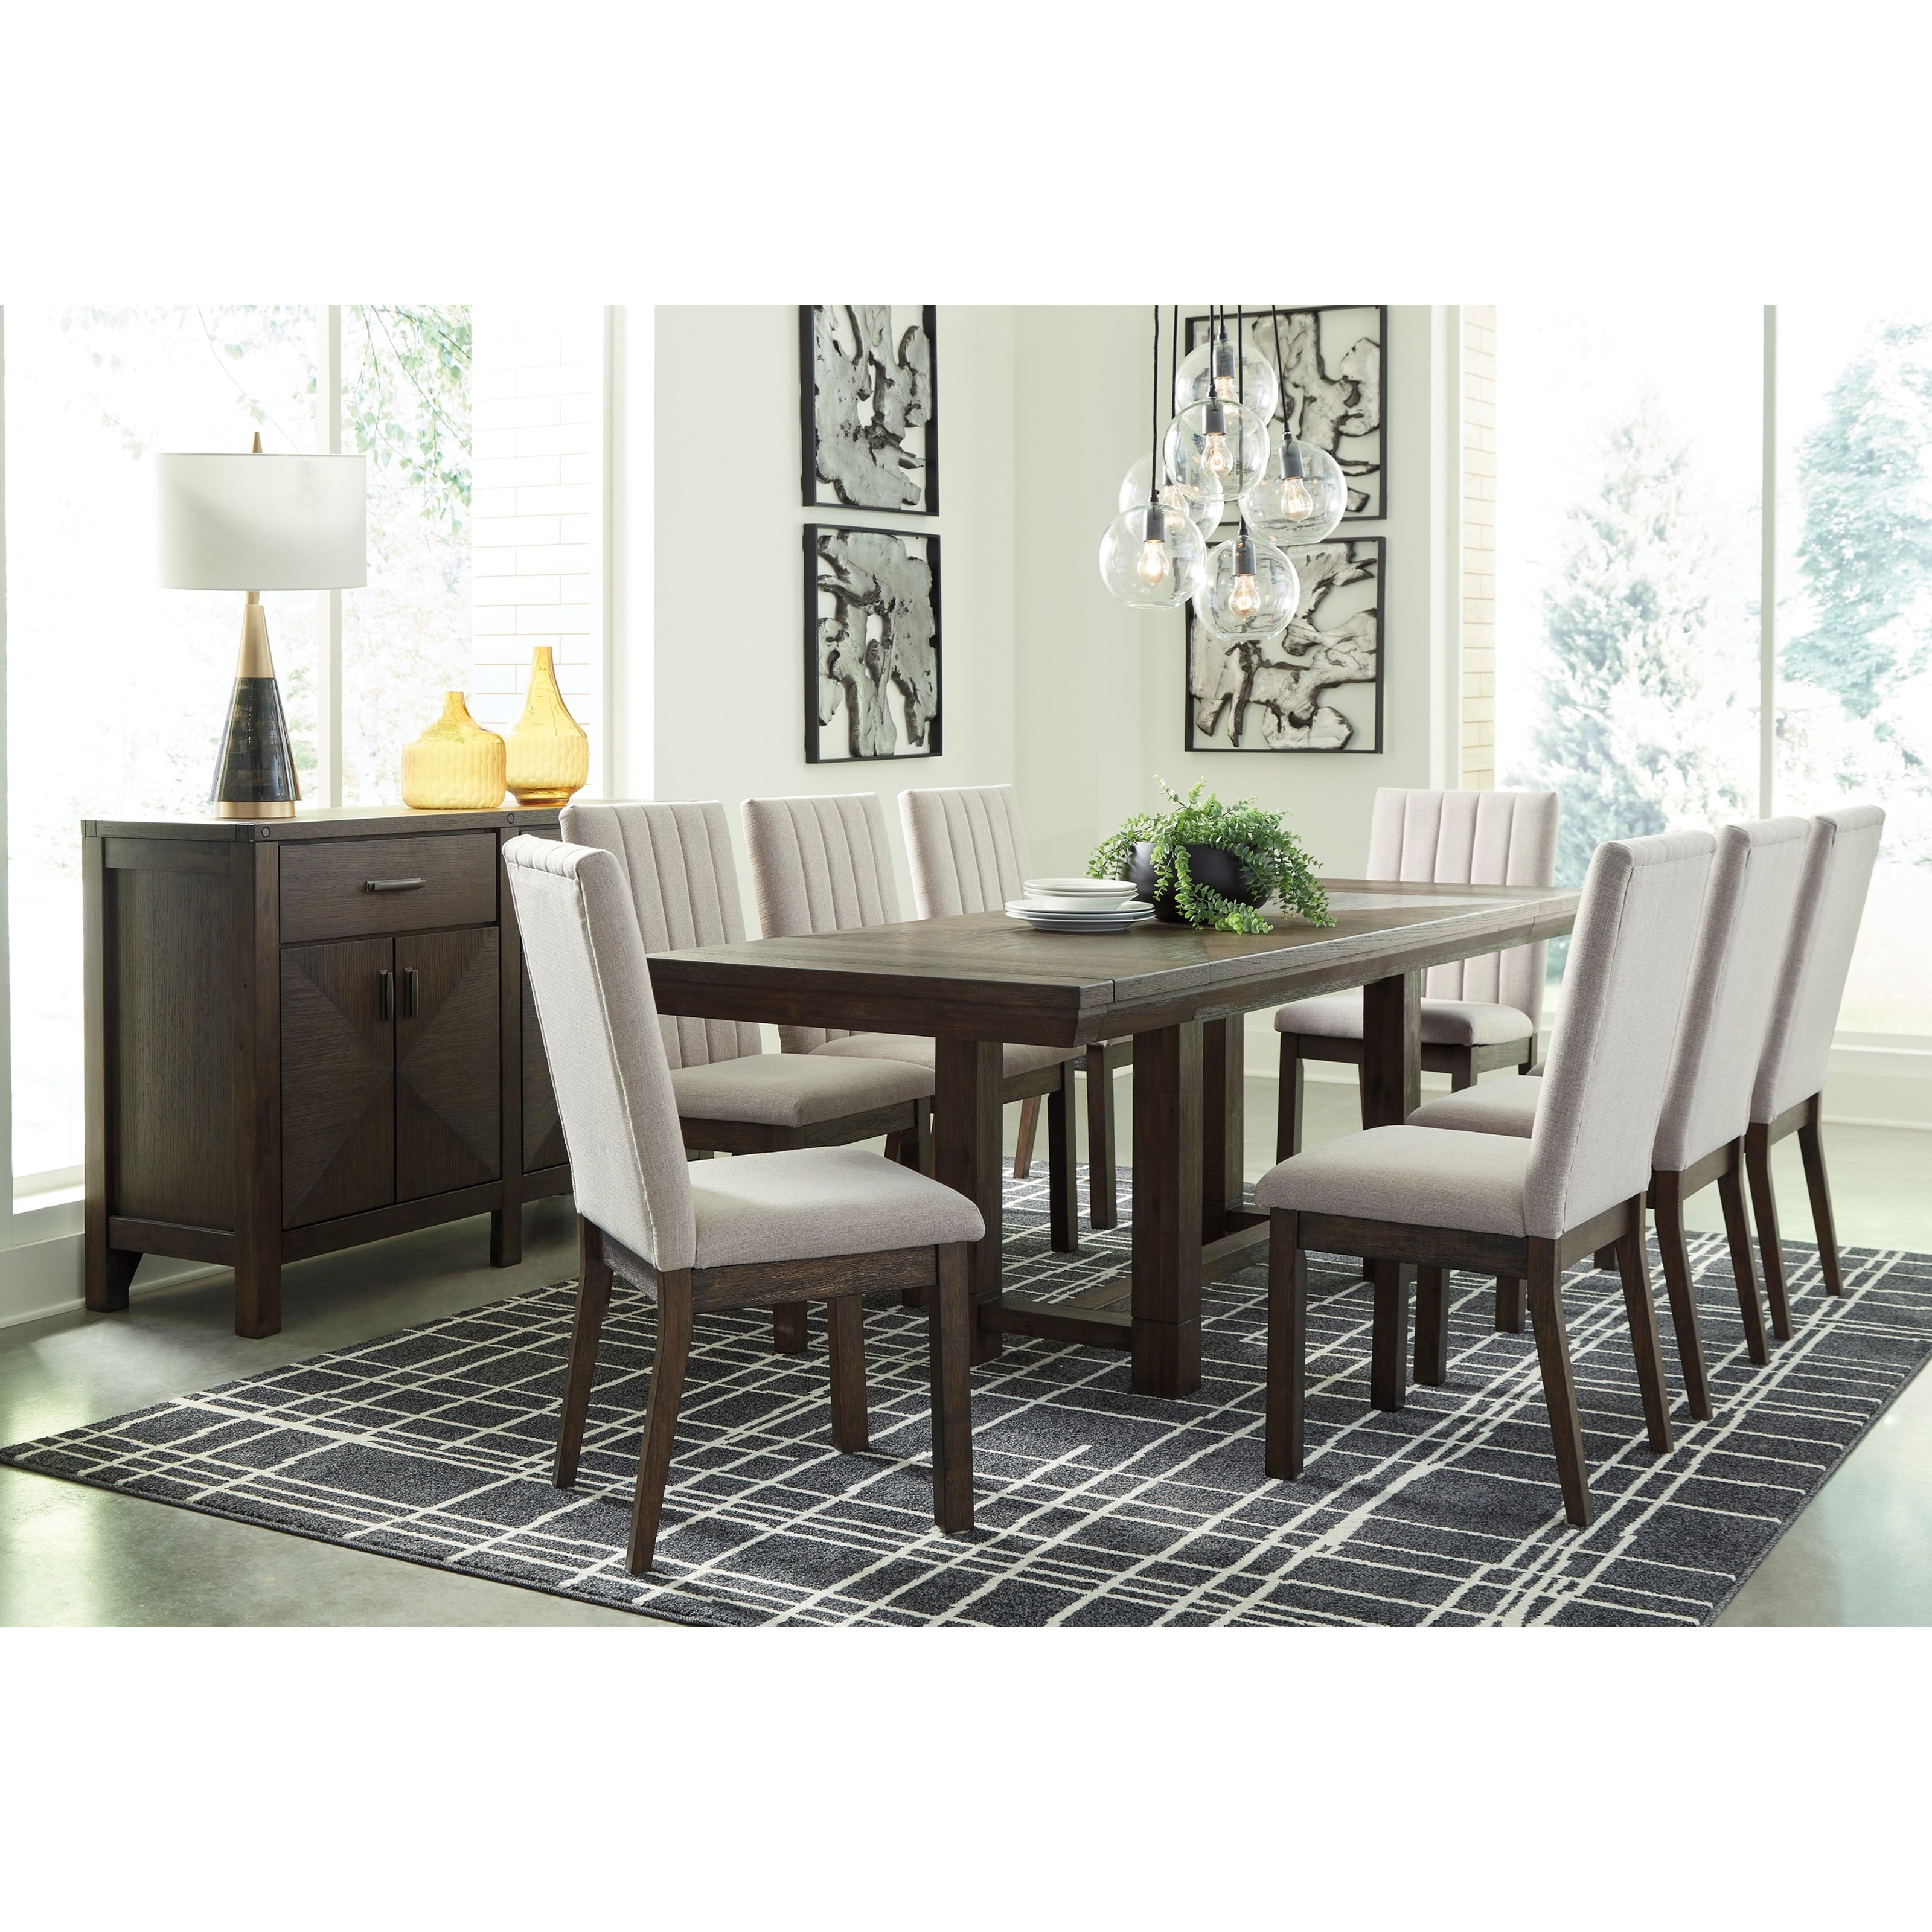 Dellbeck Dining Room Group by Millennium at Northeast Factory Direct